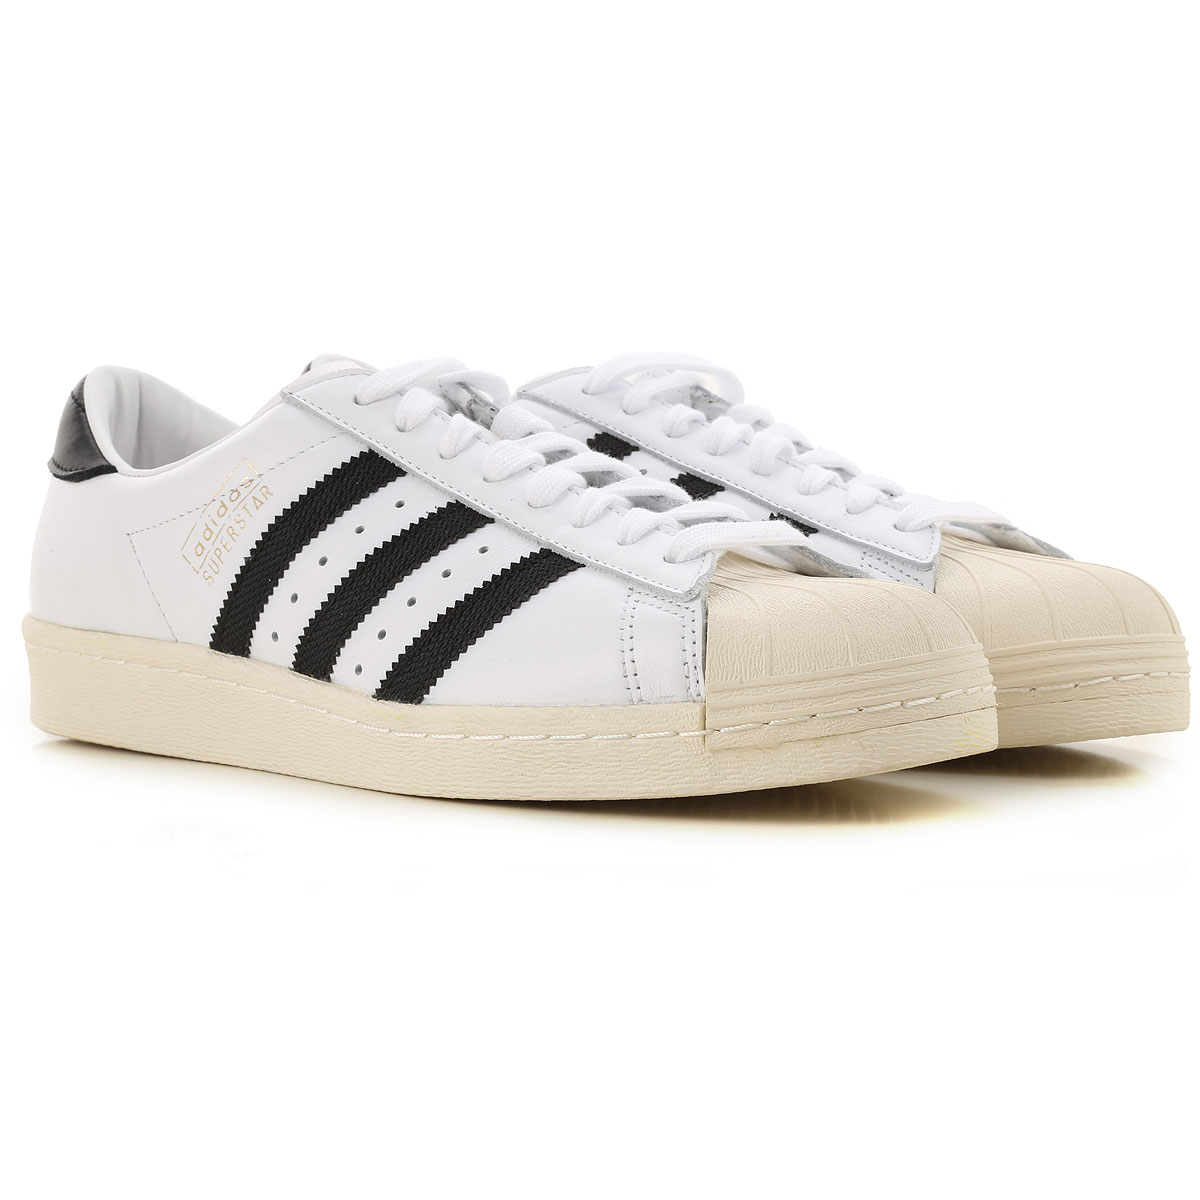 Mens Shoes Adidas, Style code: cq2475